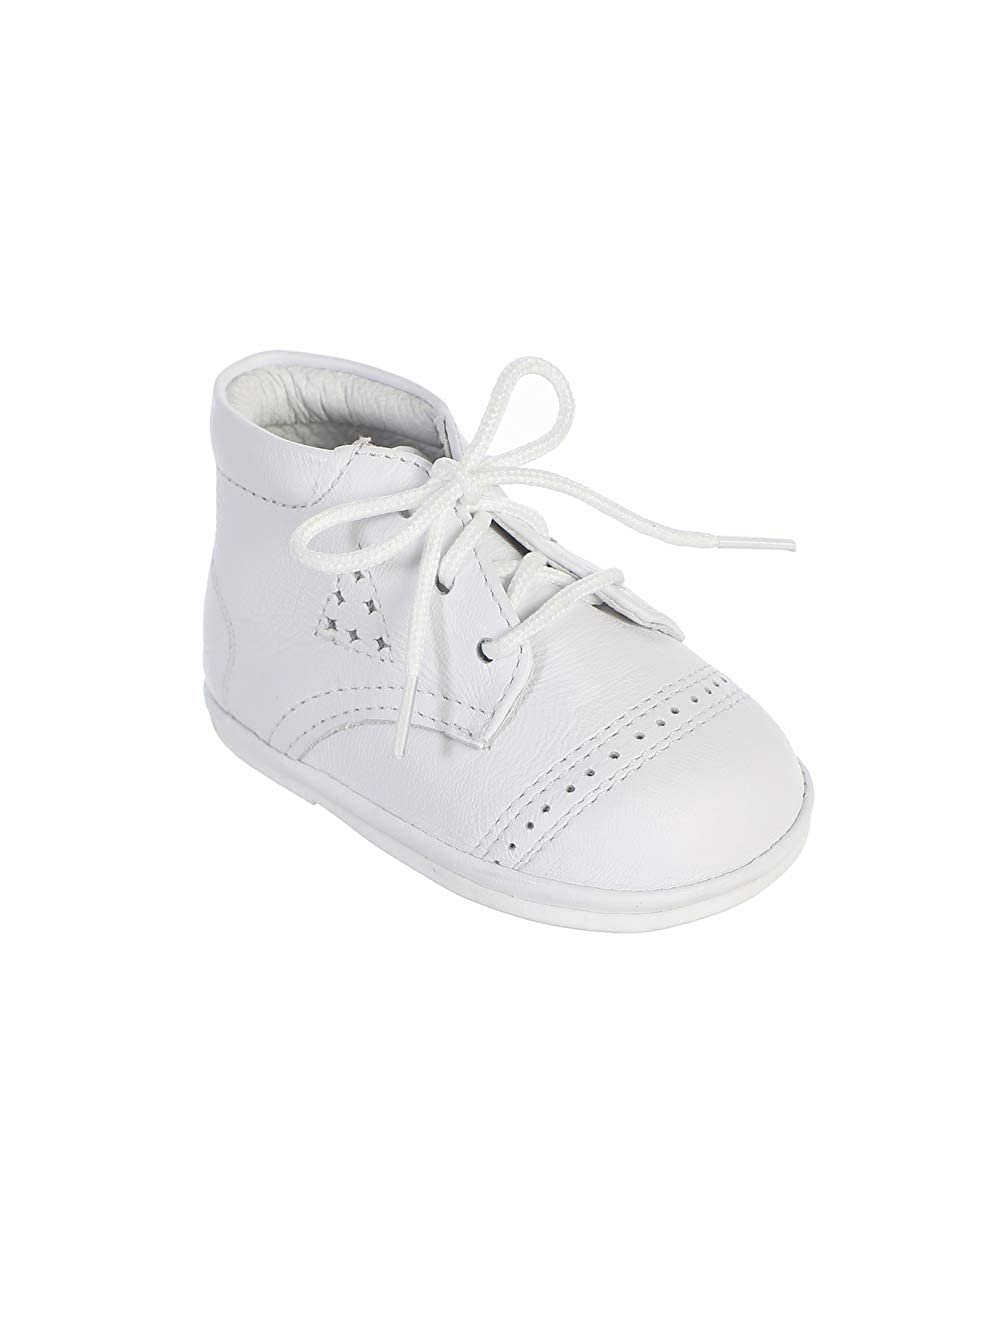 Many Styles! Avery Hill Boys Leather High Top Lace-Up Baptism Special Occasion Shoes